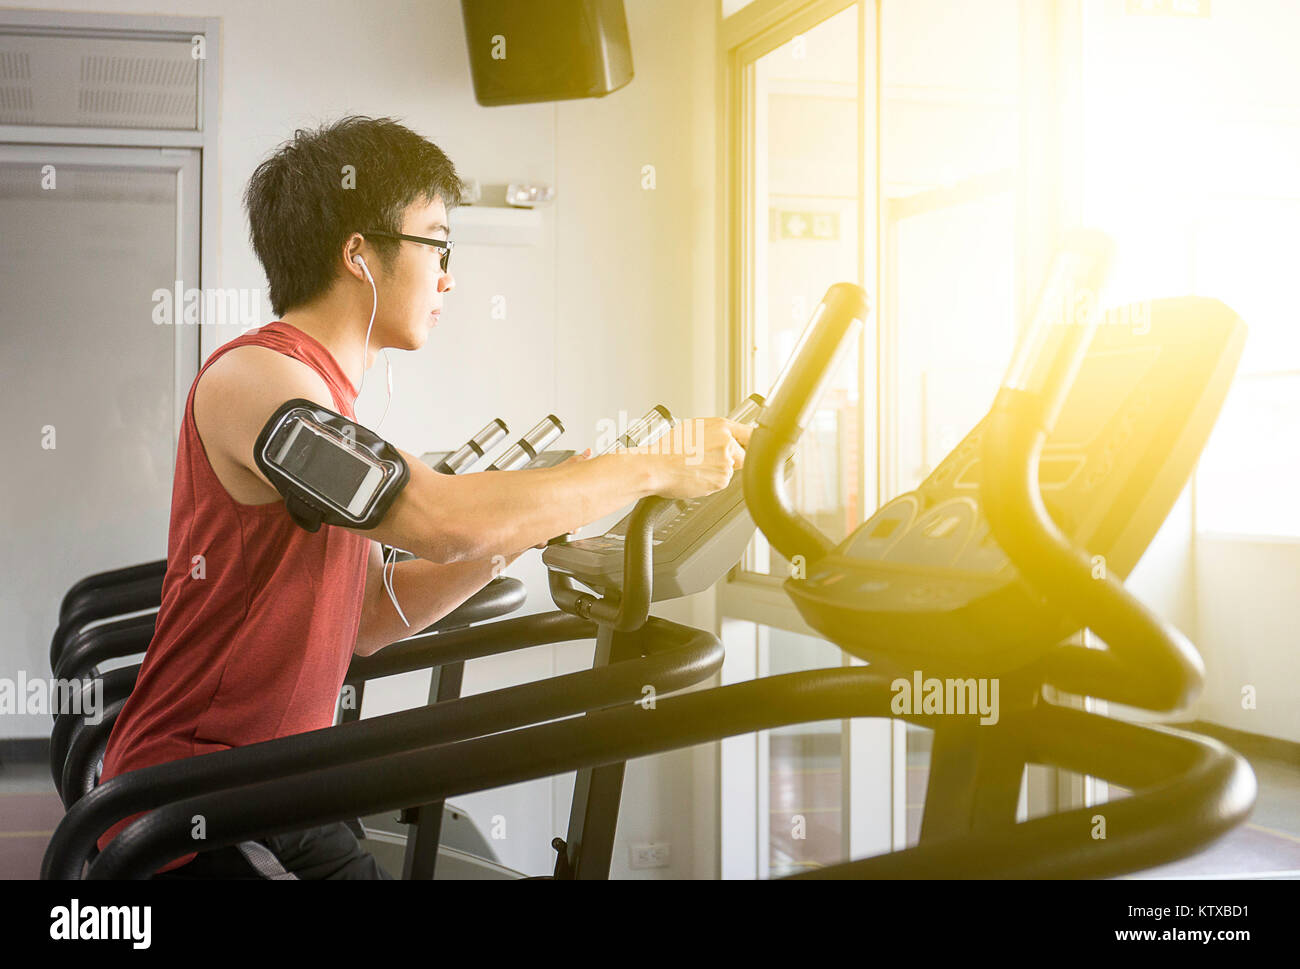 Handsome man on running machine with listen music for relax in gym